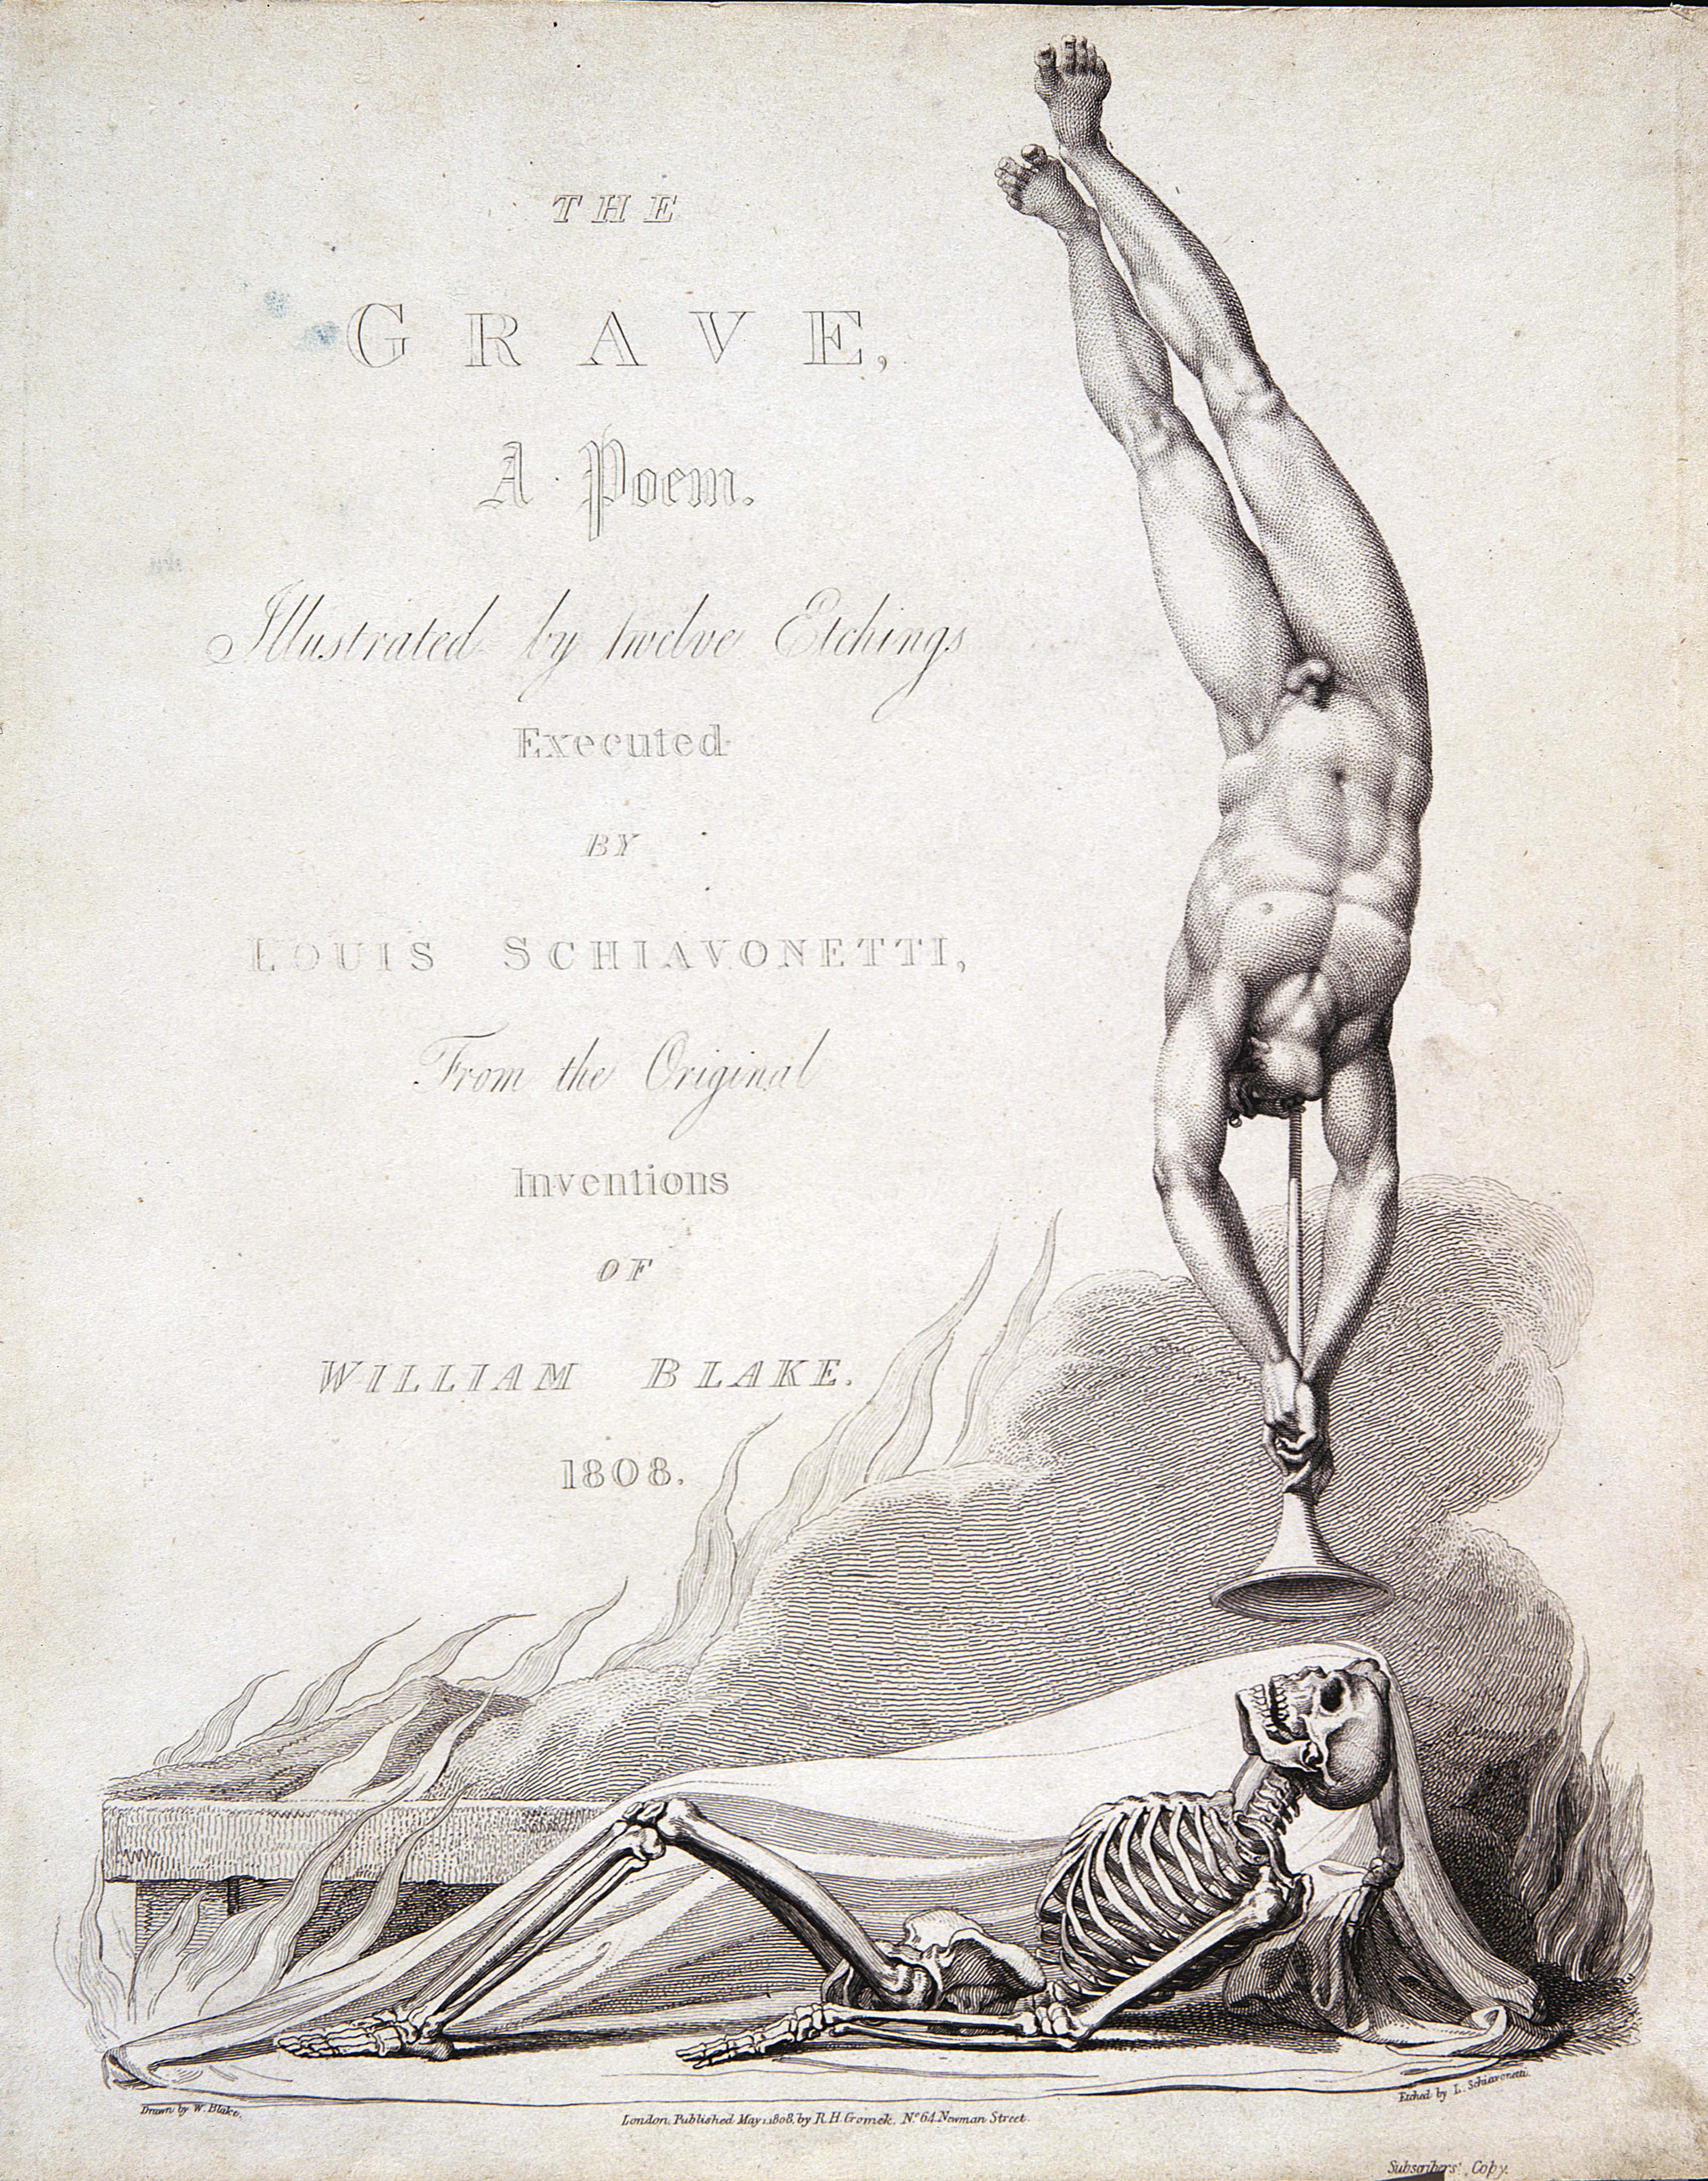 THE 	GRAVE, 	A Poem. 	Illustrated by twelve Etchings 	Executed 	BY 	LOUIS SCHIAVONETTI, 	From the Original 	Inventions 	OF 	WILLIAM BLAKE. 	1808. 	Drawn by W. Blake. 	Etched by L. Schiavonetti. 	London, Published May 1, 1808, by R. H. Cromek, No. 64, Newman Street. 	Subscribers' Copy.